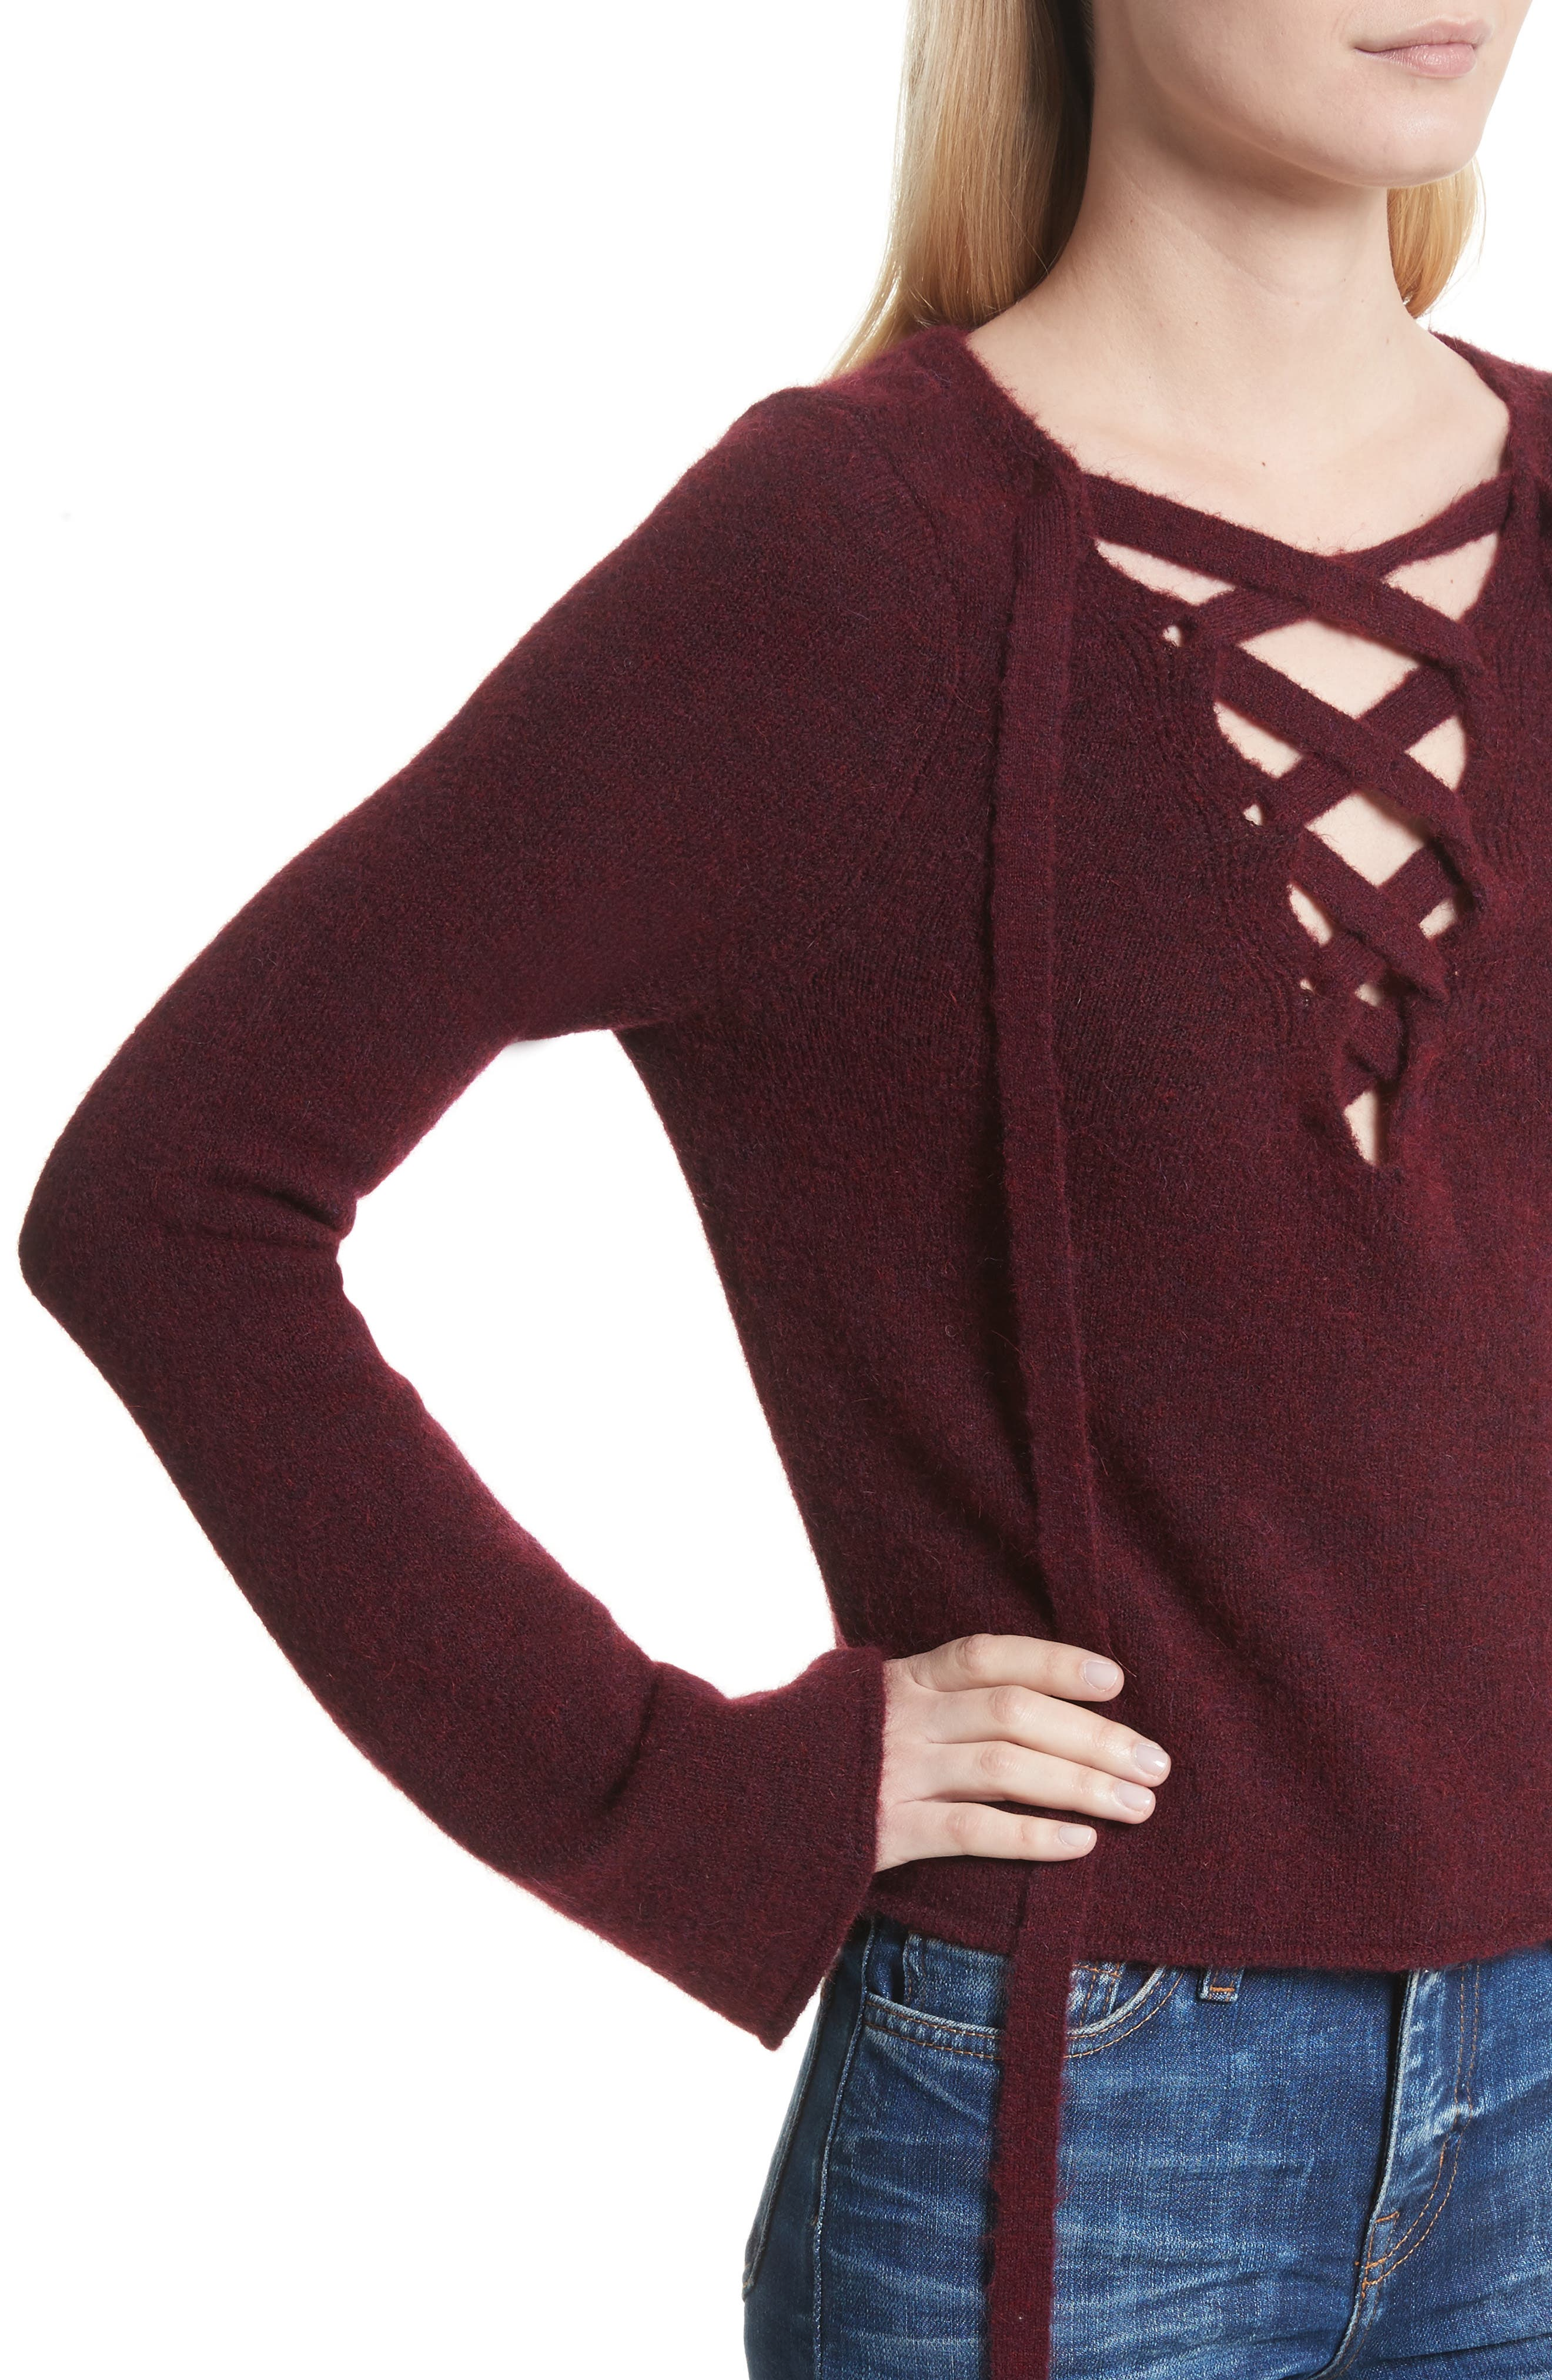 Candela Lace-Up Sweater,                             Alternate thumbnail 4, color,                             600